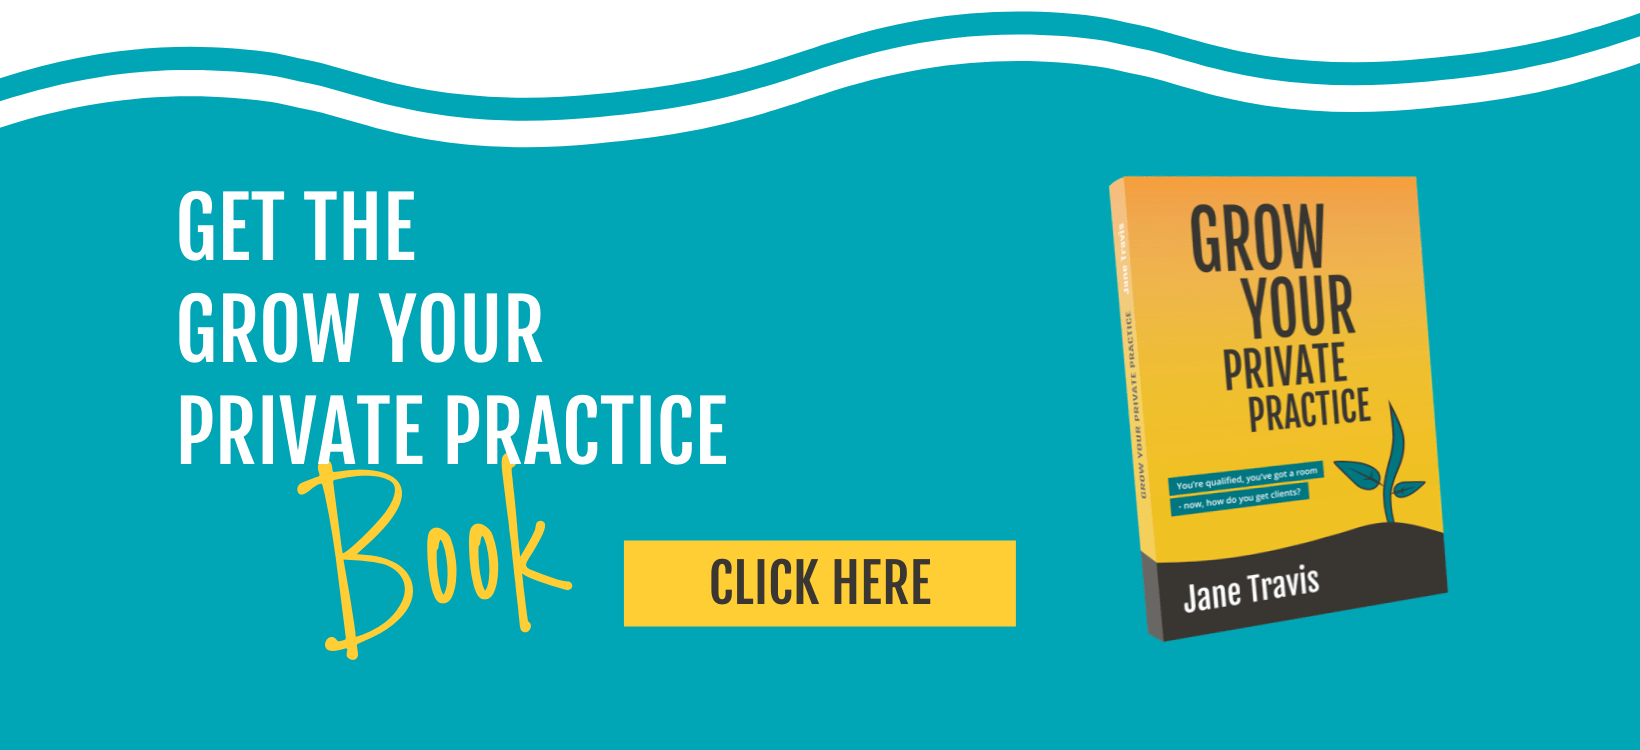 Grow Your Private Practice book, for counsellors and psychotherapists